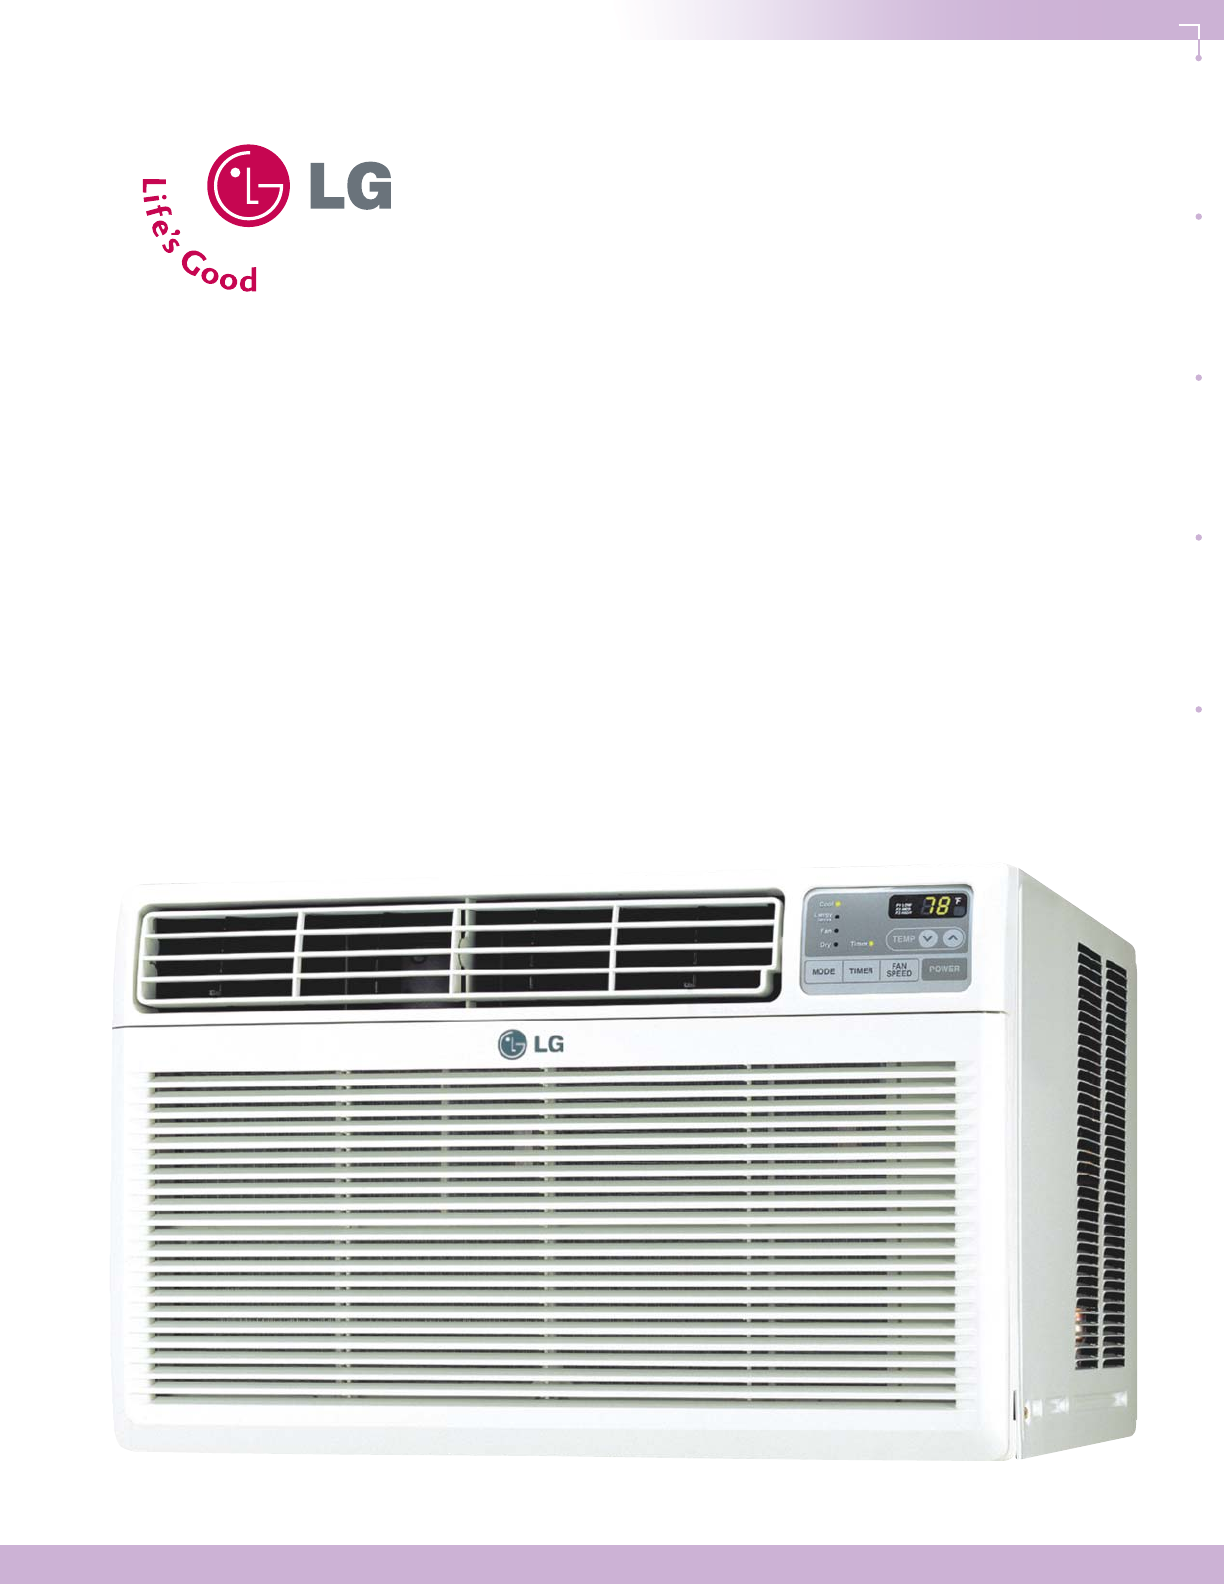 lg electronics lwhd1800r air conditioner user manual